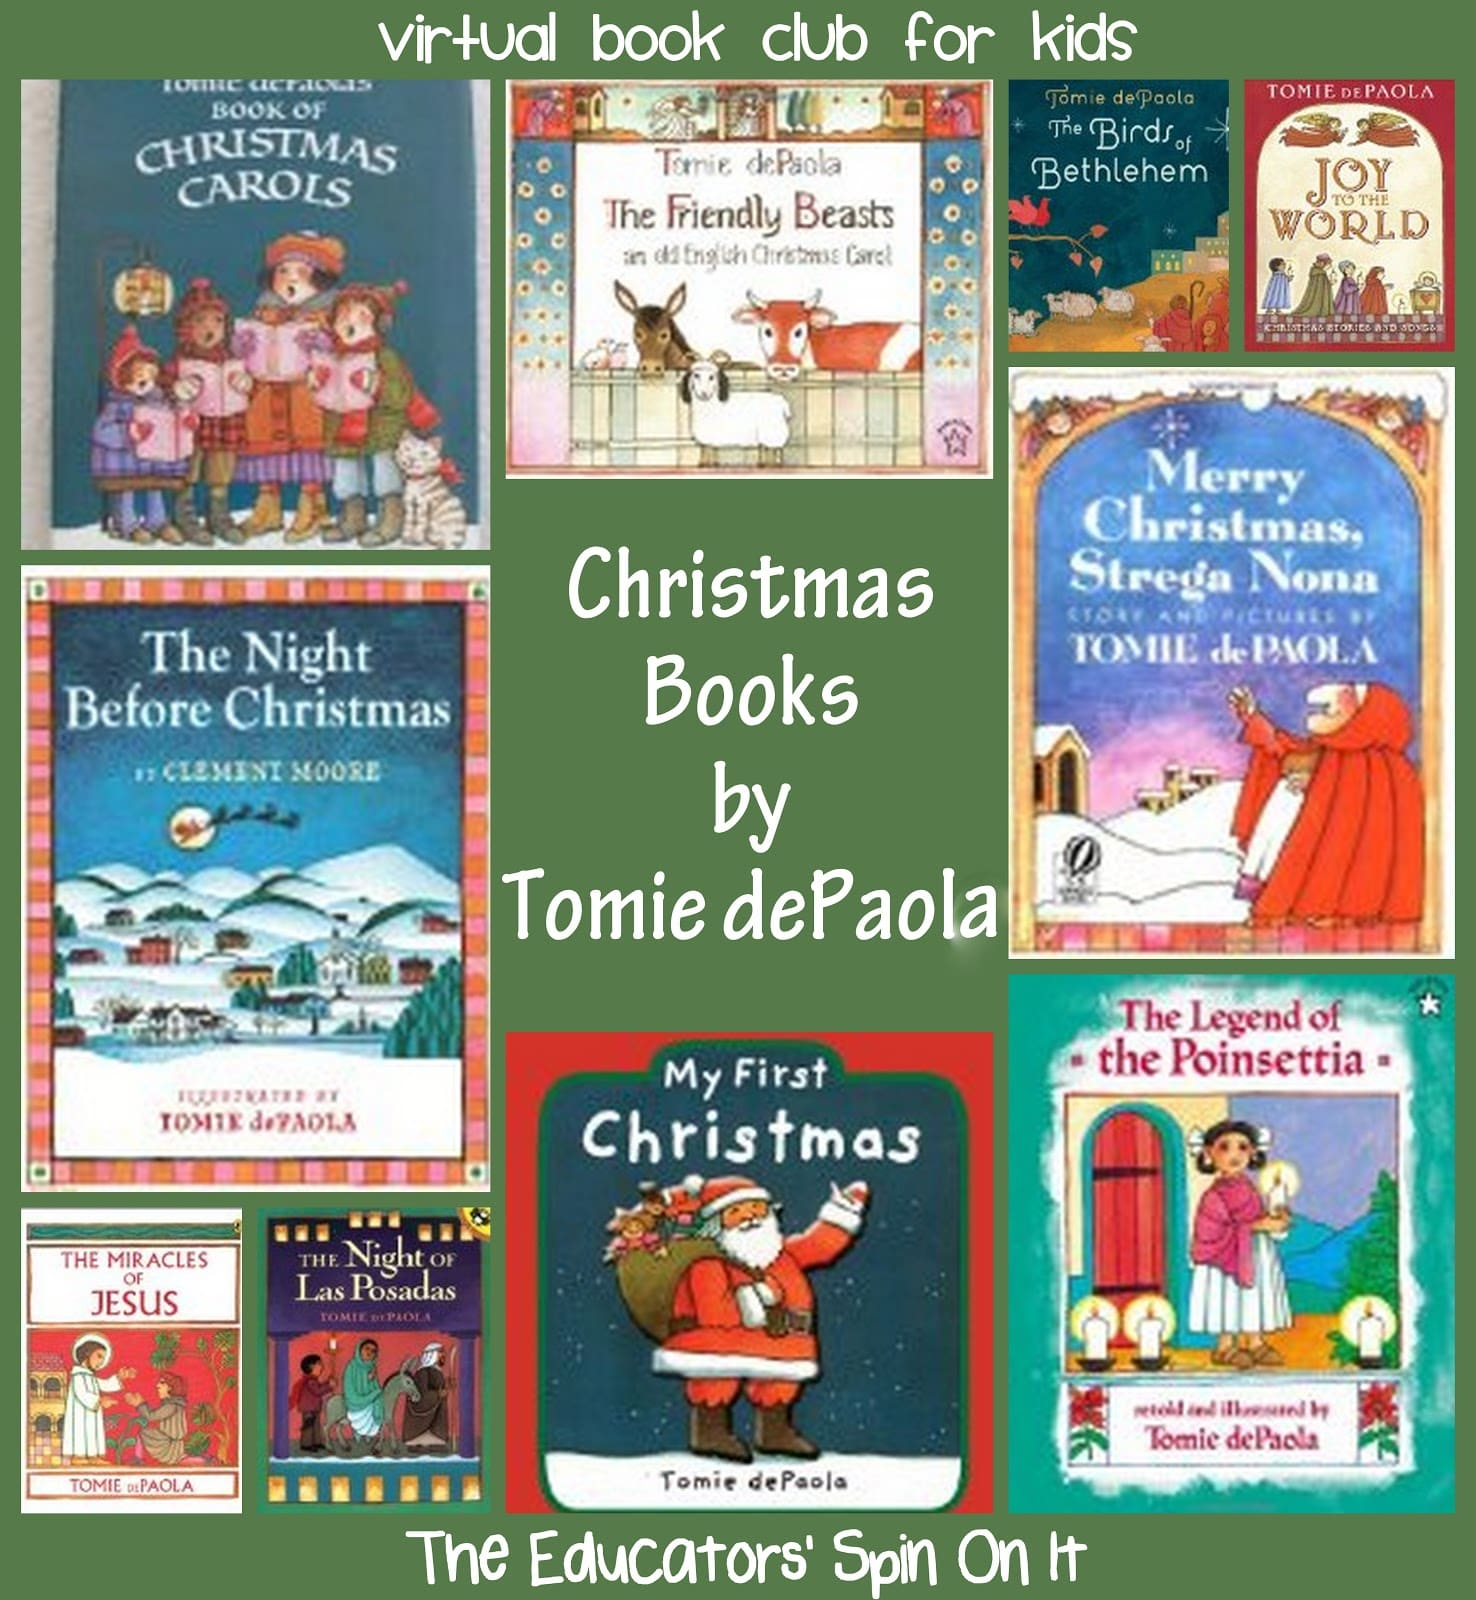 15 Best author tomie depaola images | School videos ...